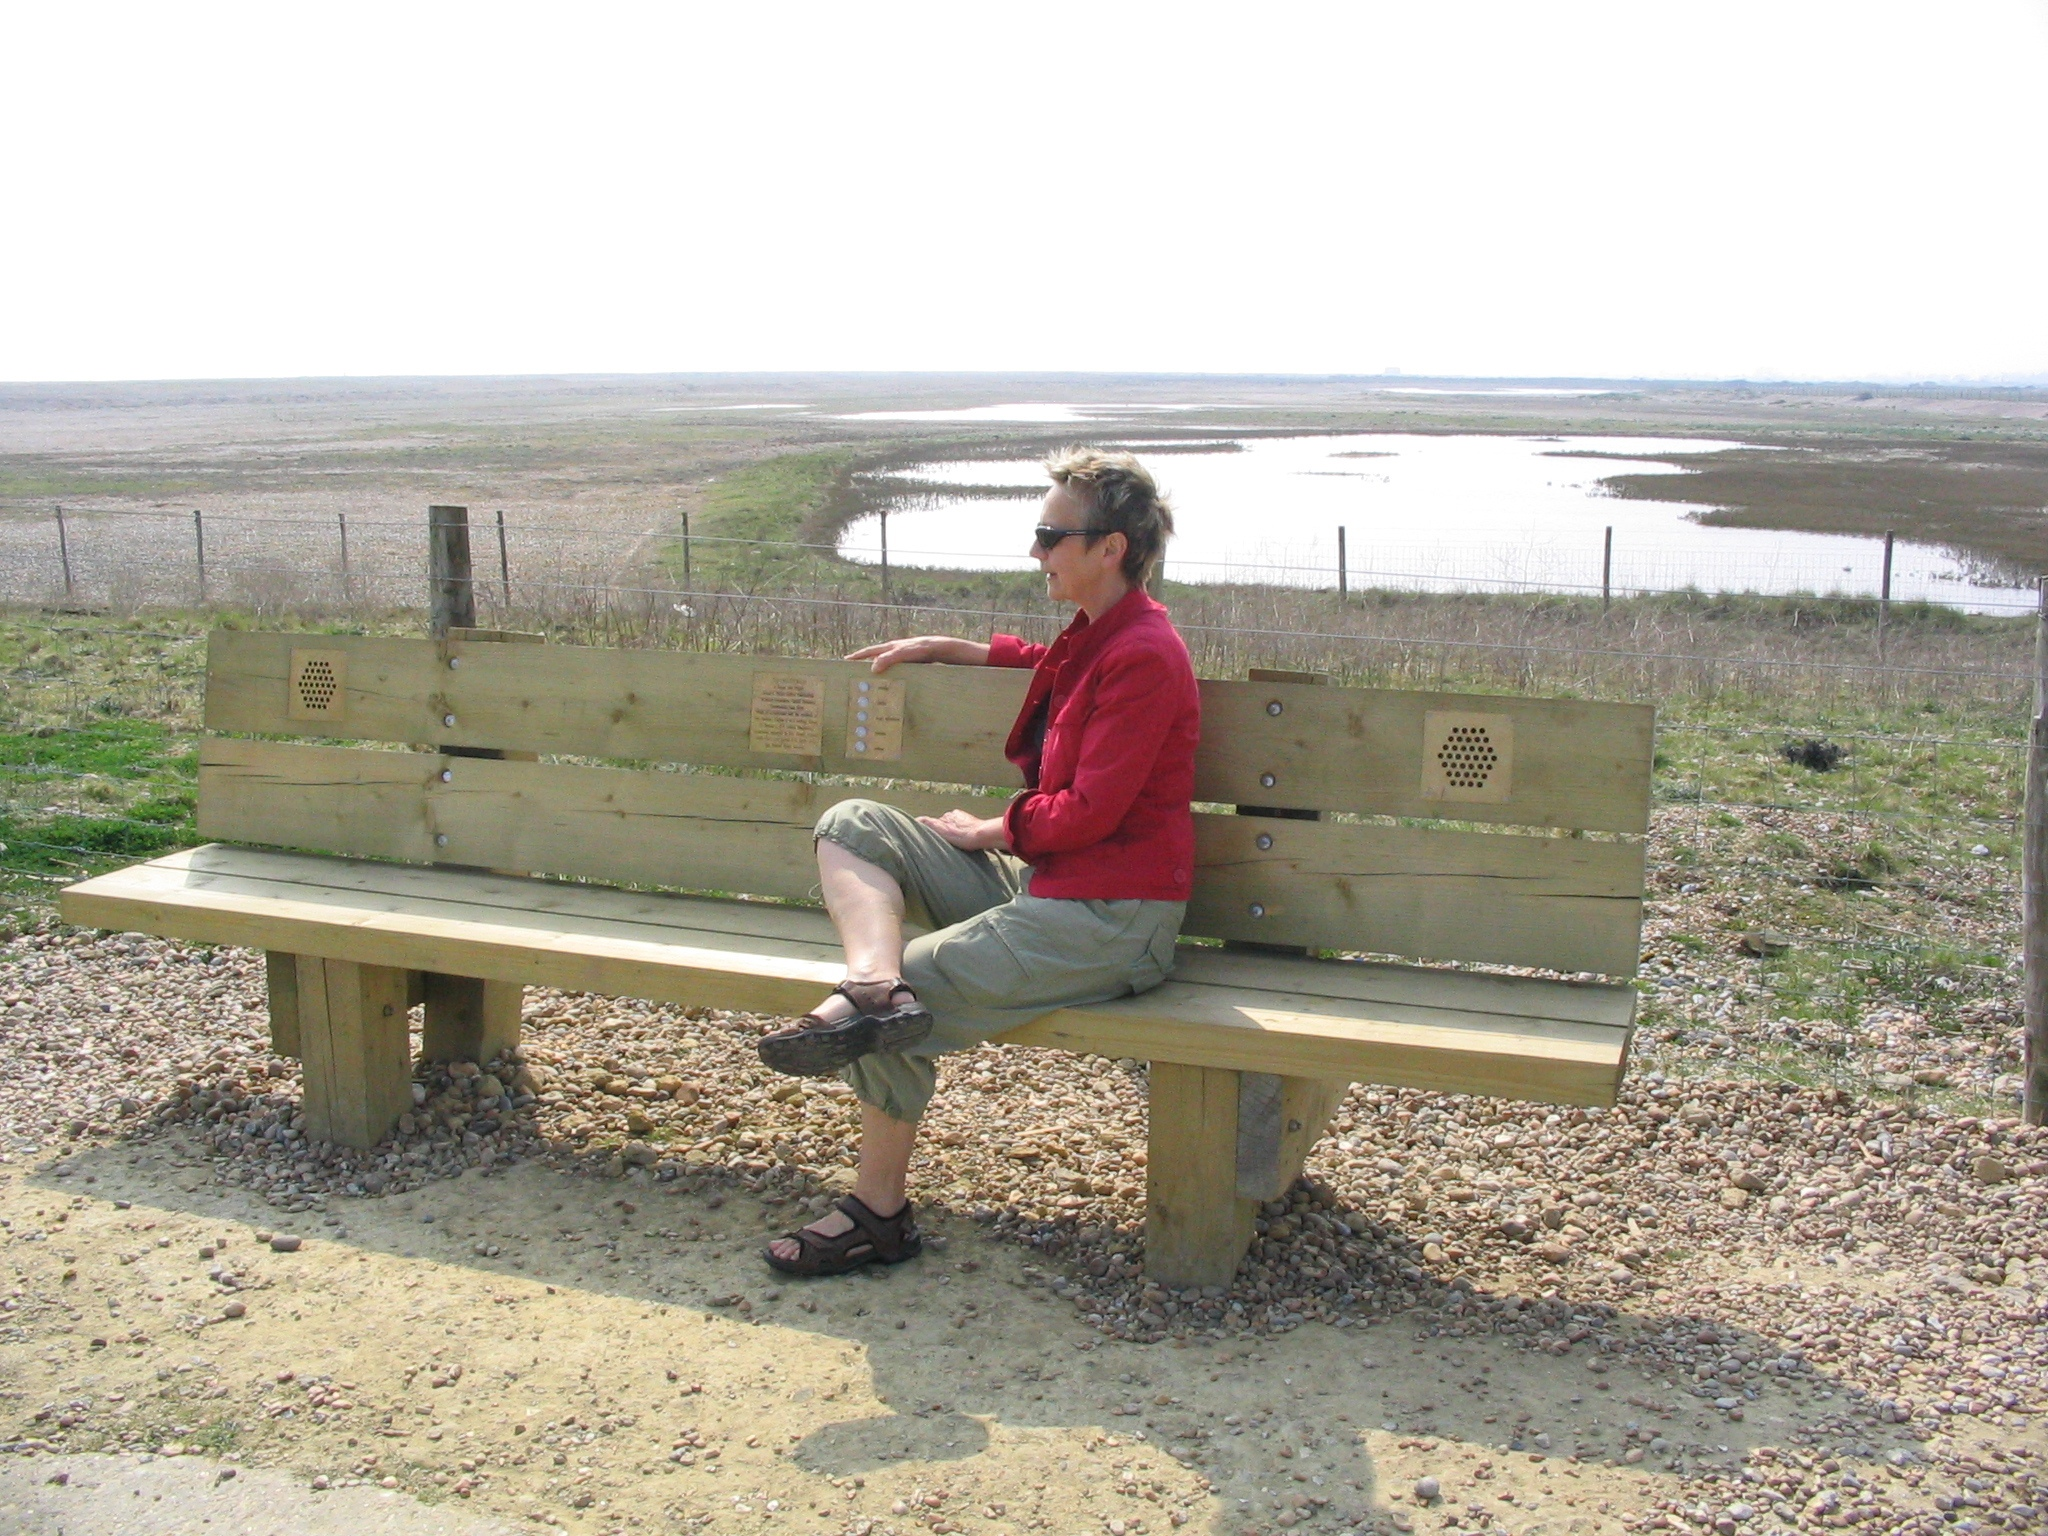 Saffron Summerfield's Soundbench at Rye Harbour